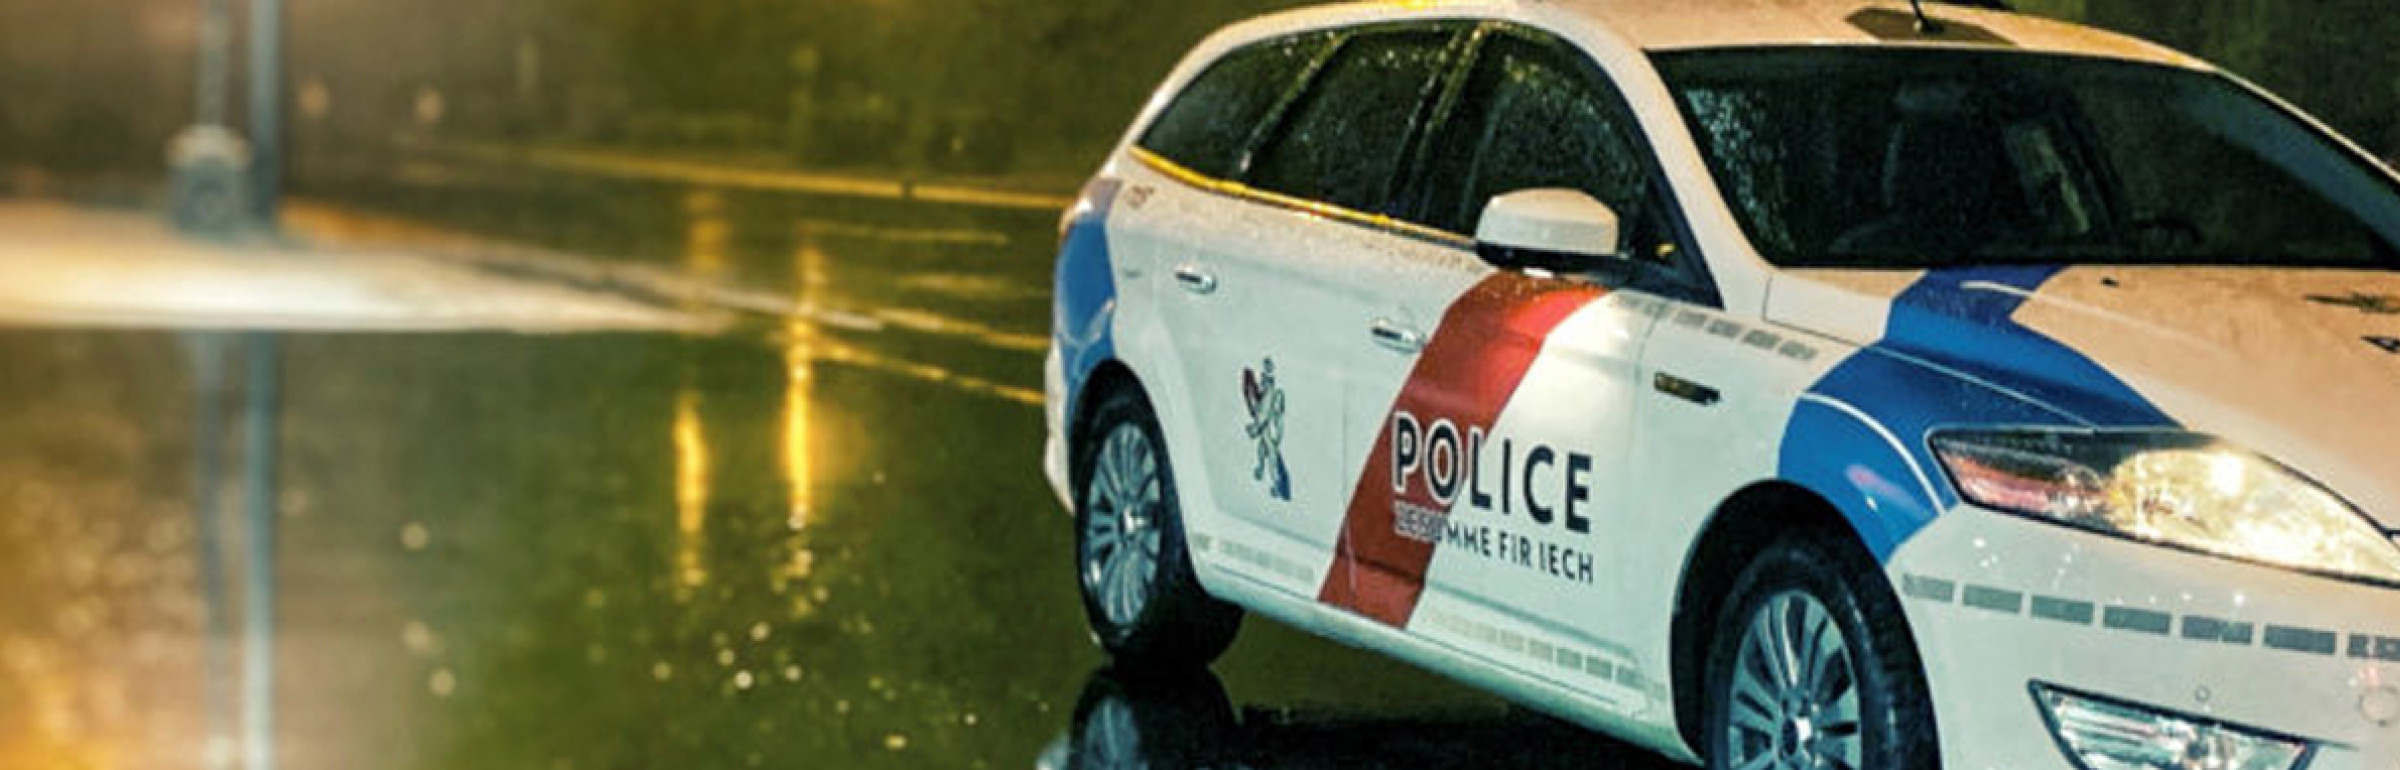 Banner Police Grand-Ducale